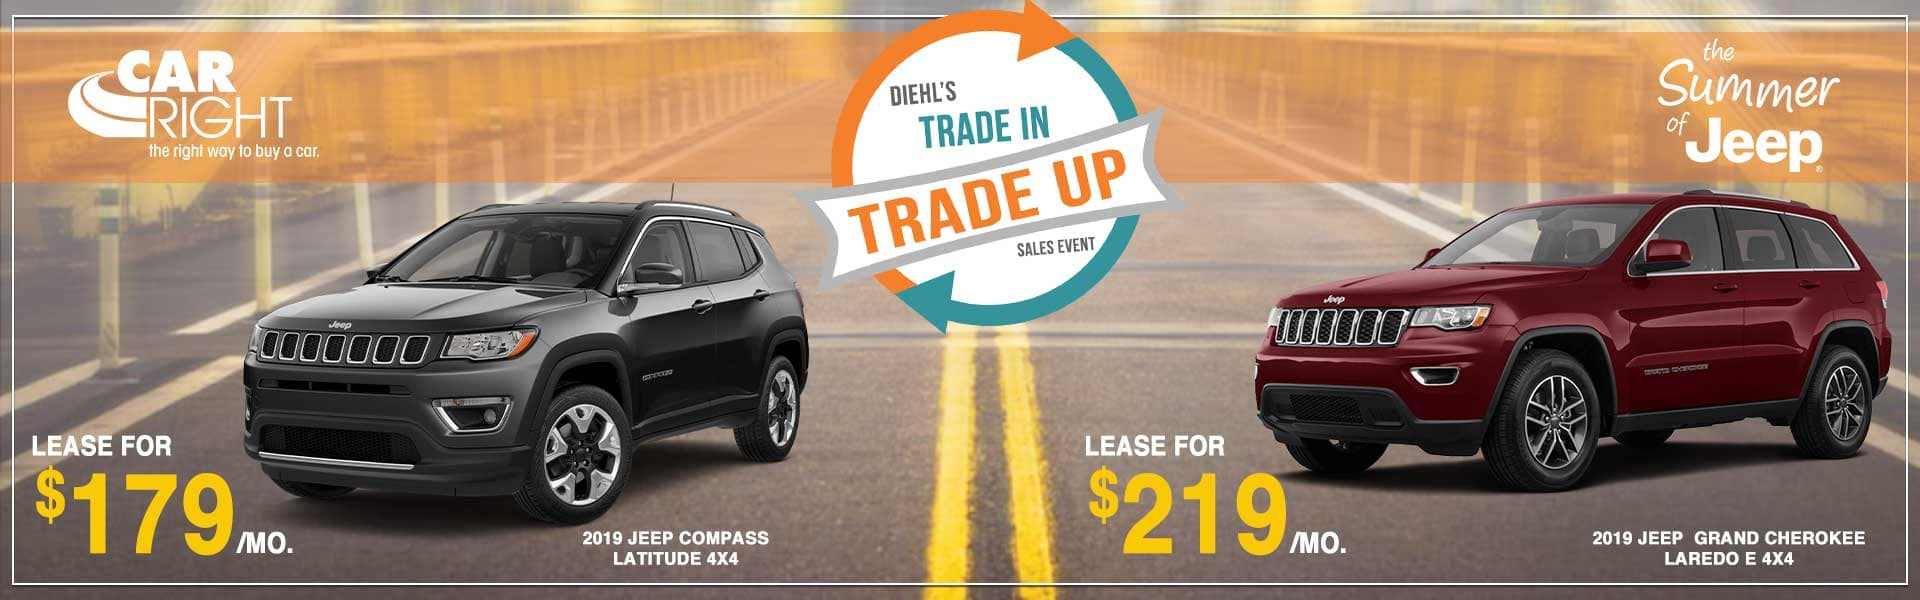 CARRIGHT trade in trade up sales event summer of jeep event summer clearance event jeep lease new vehicle special moon township Labor Day sales event